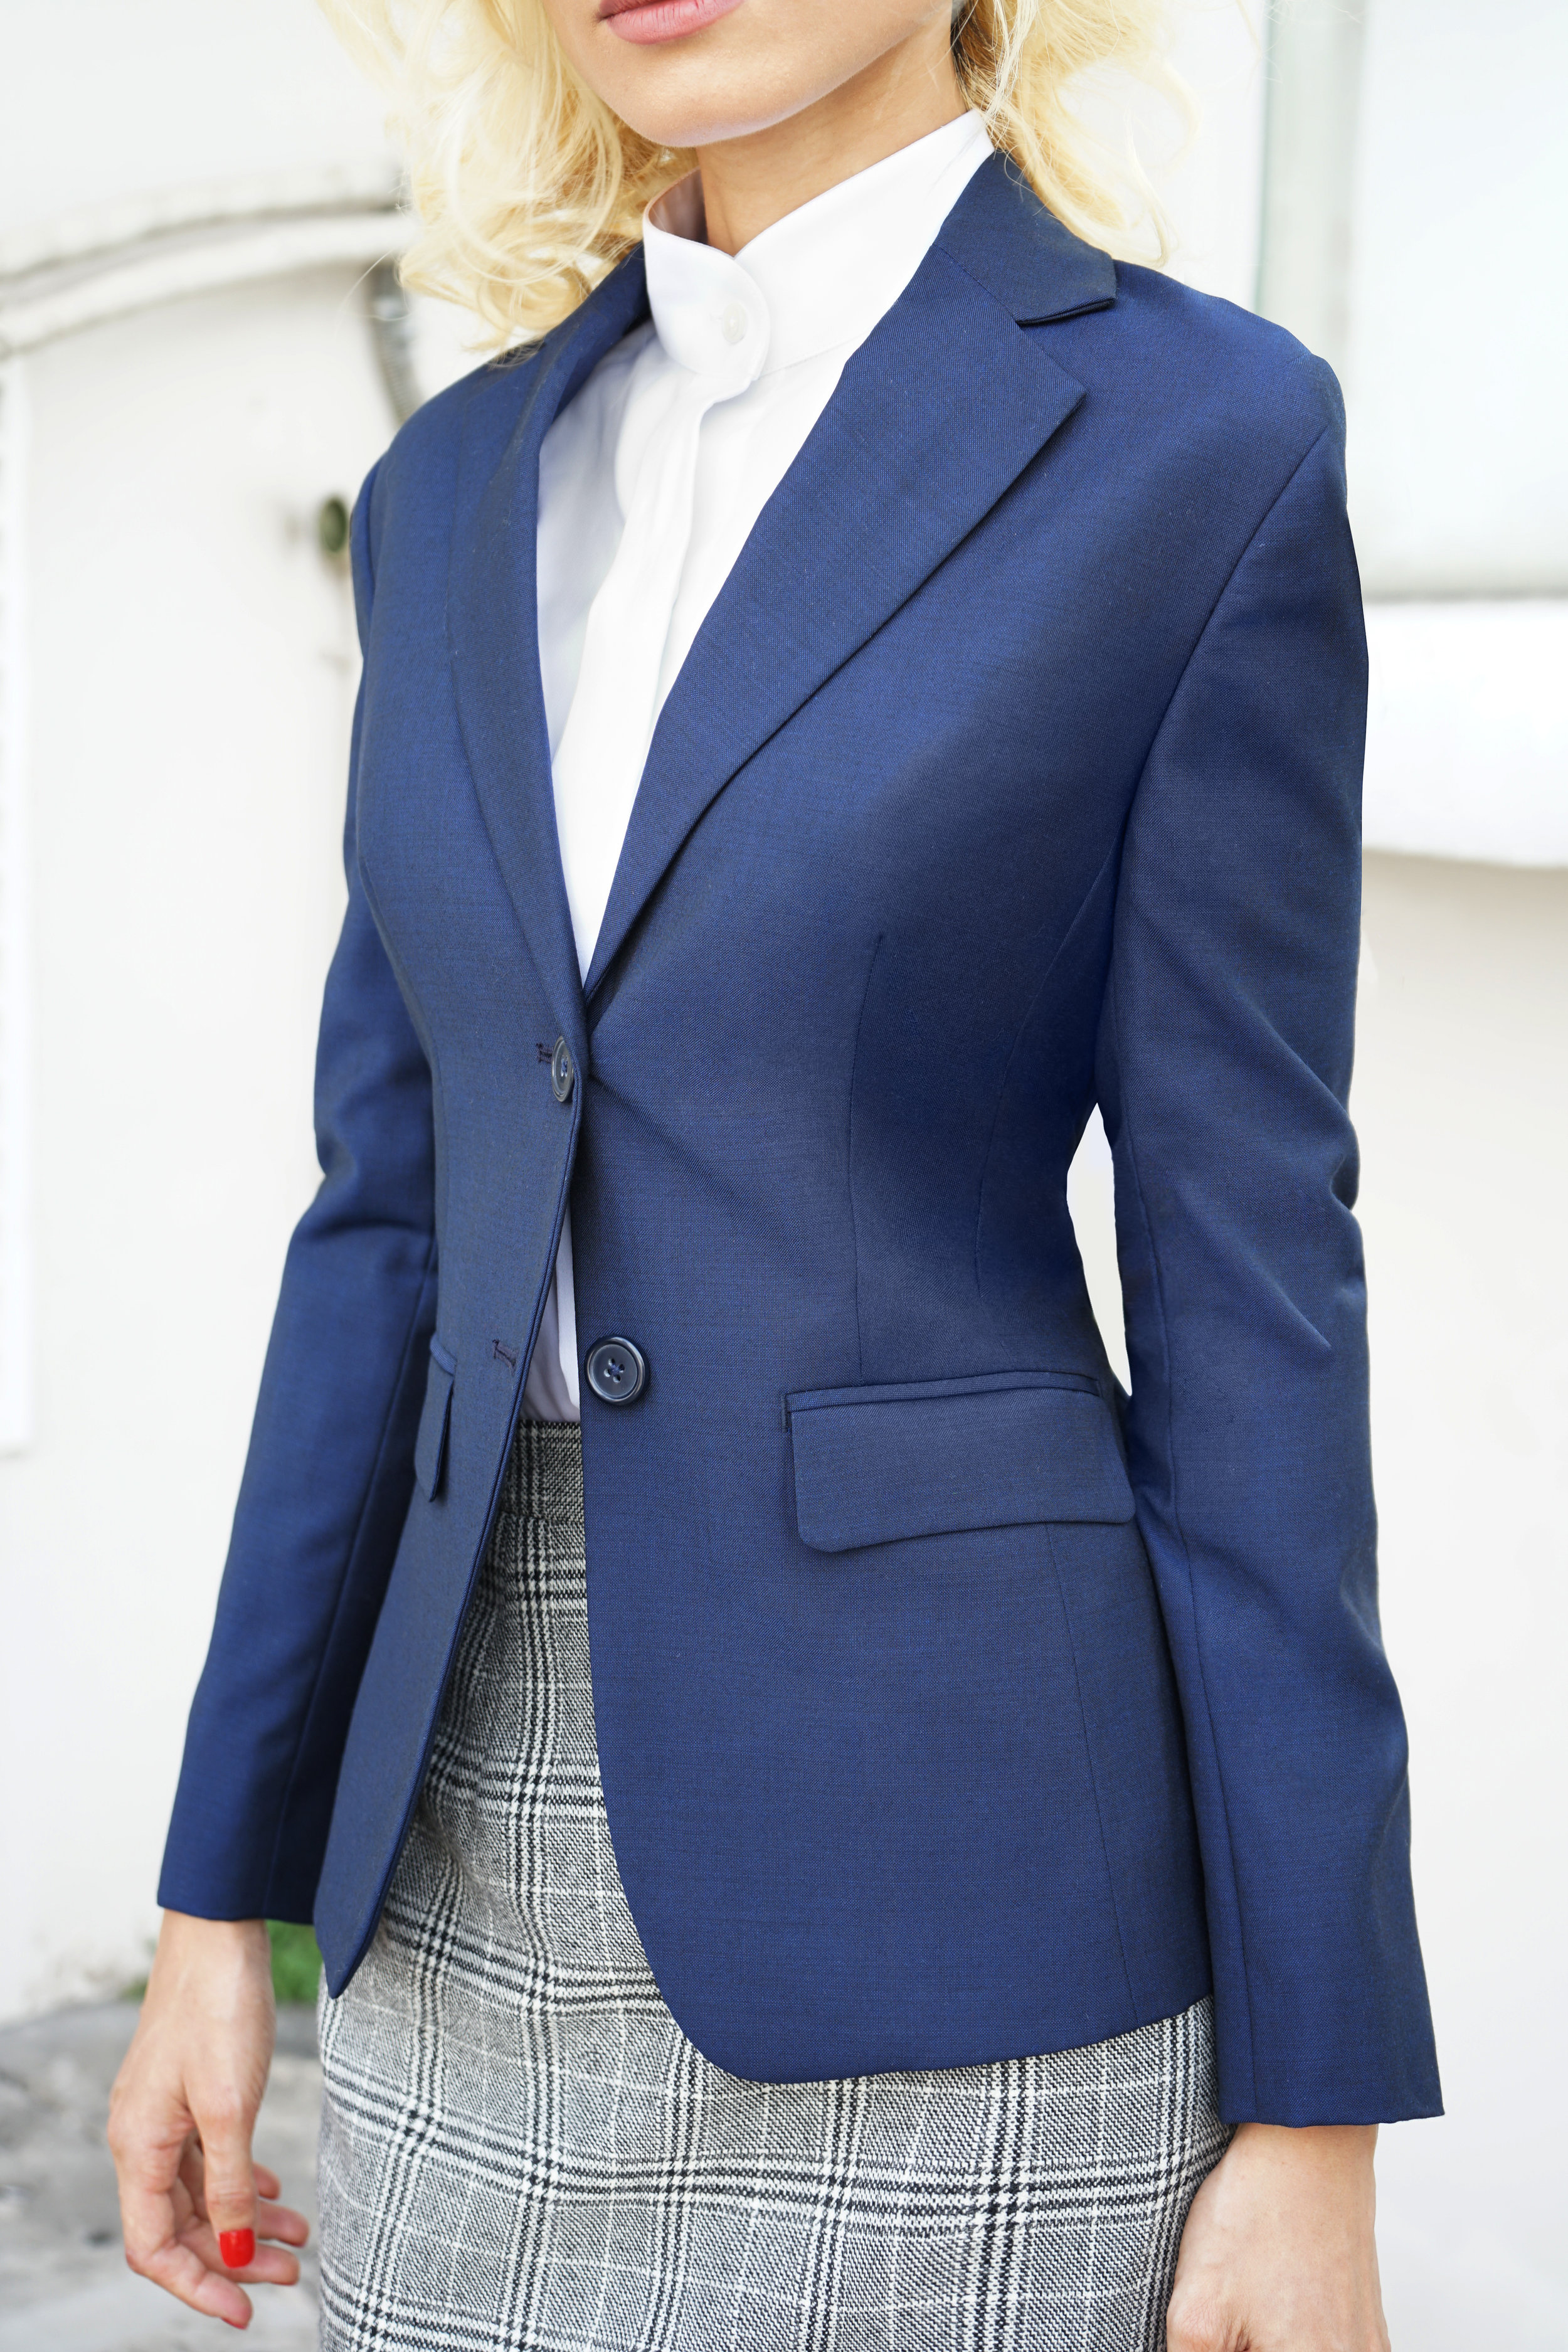 Woman's blue suit jacket with a Price of wales skirt